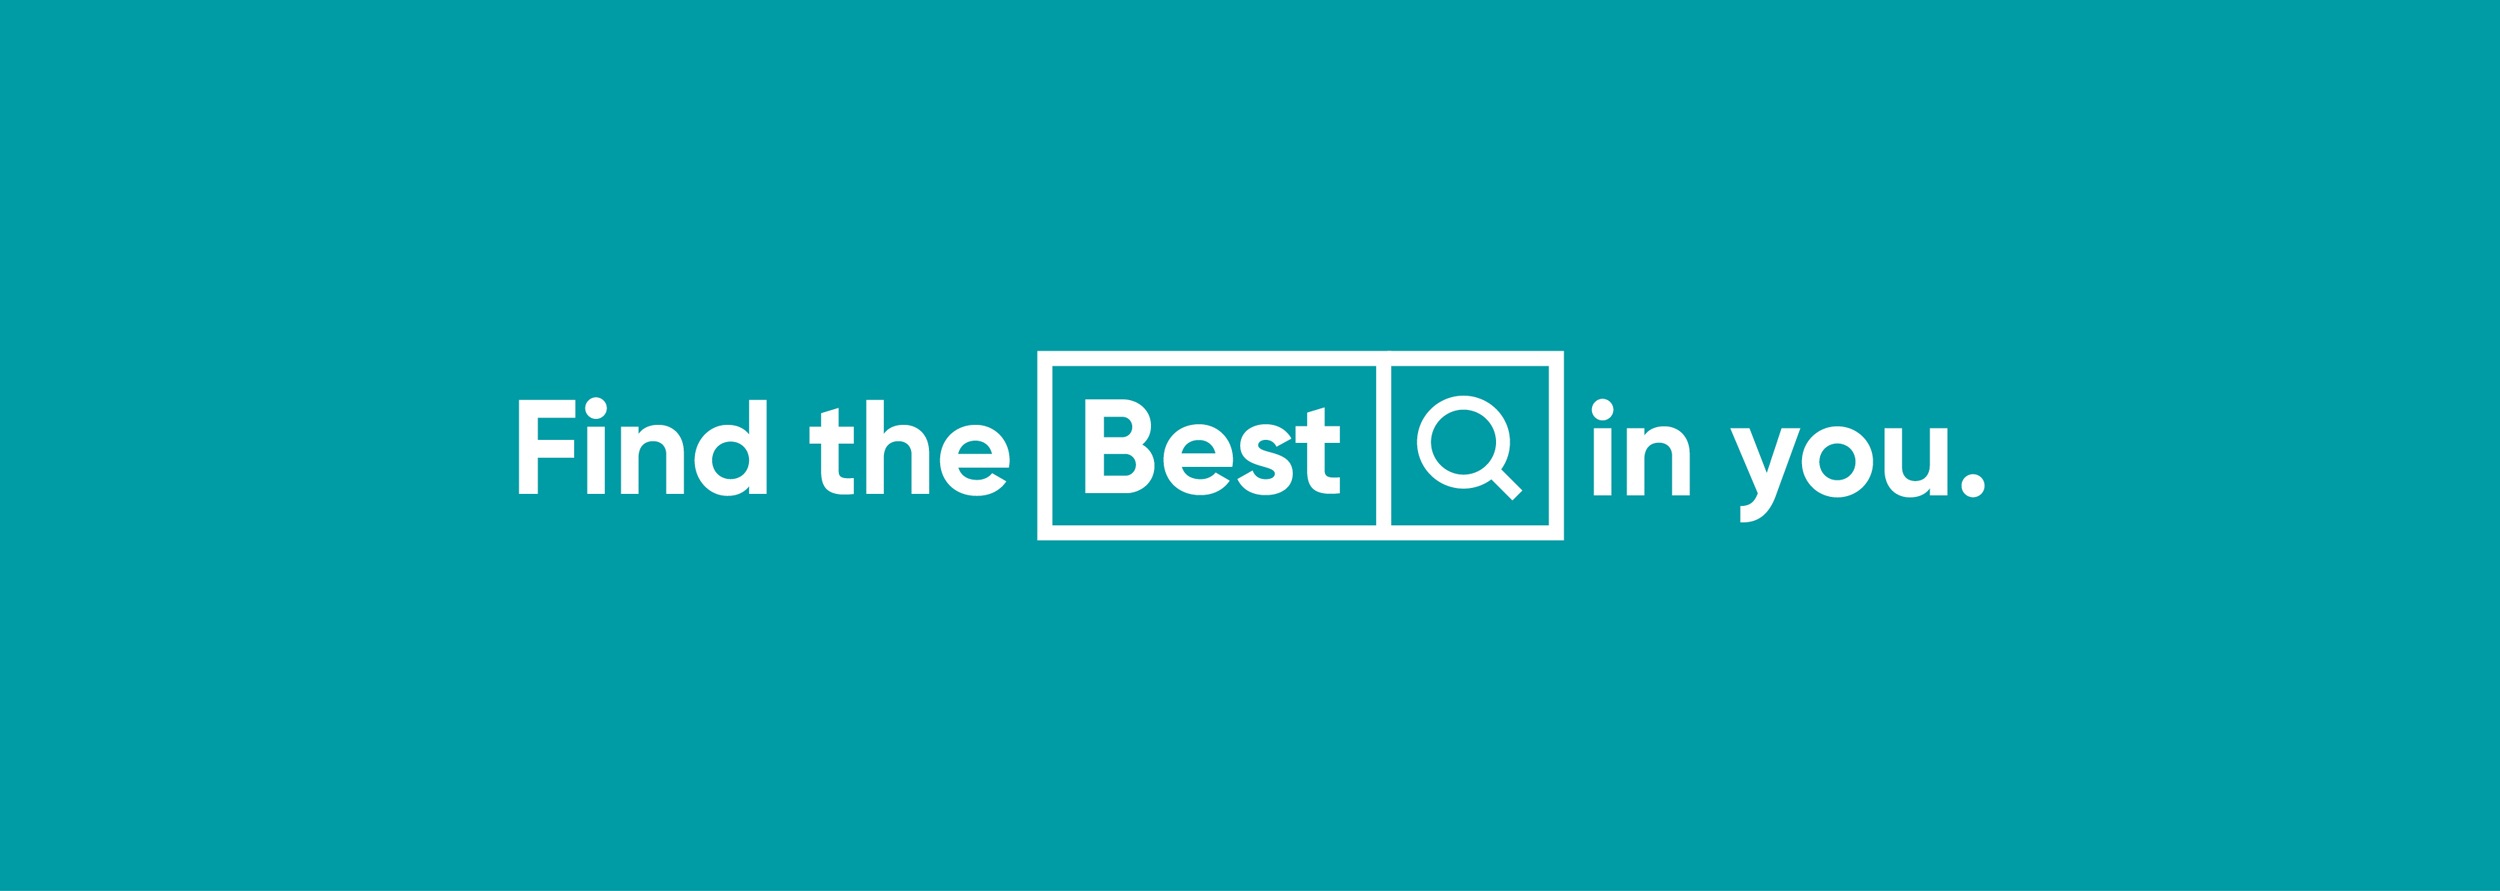 LCETB Find the best in you campaign